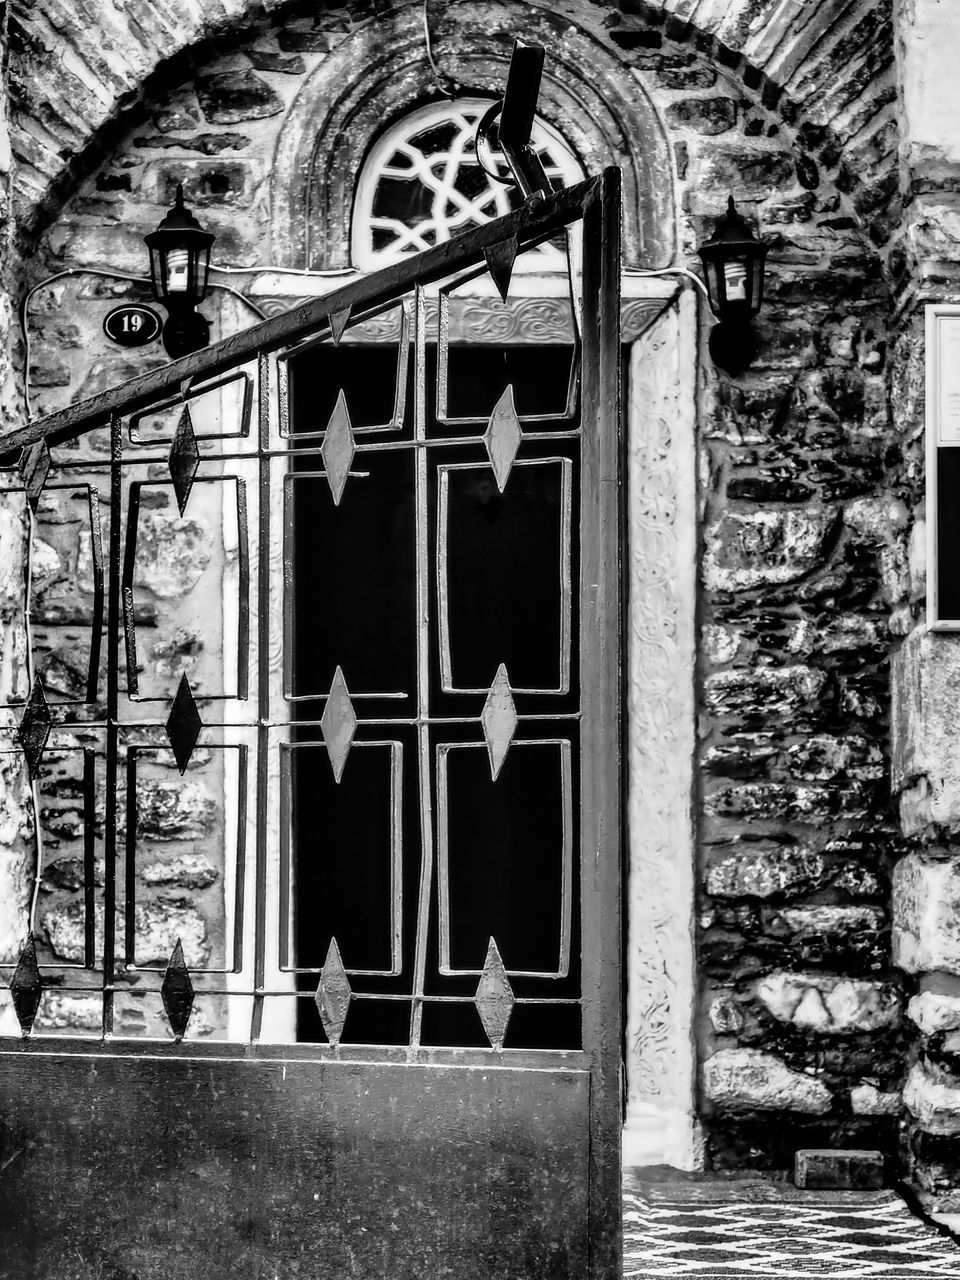 door, architecture, window, day, no people, built structure, outdoors, building exterior, close-up